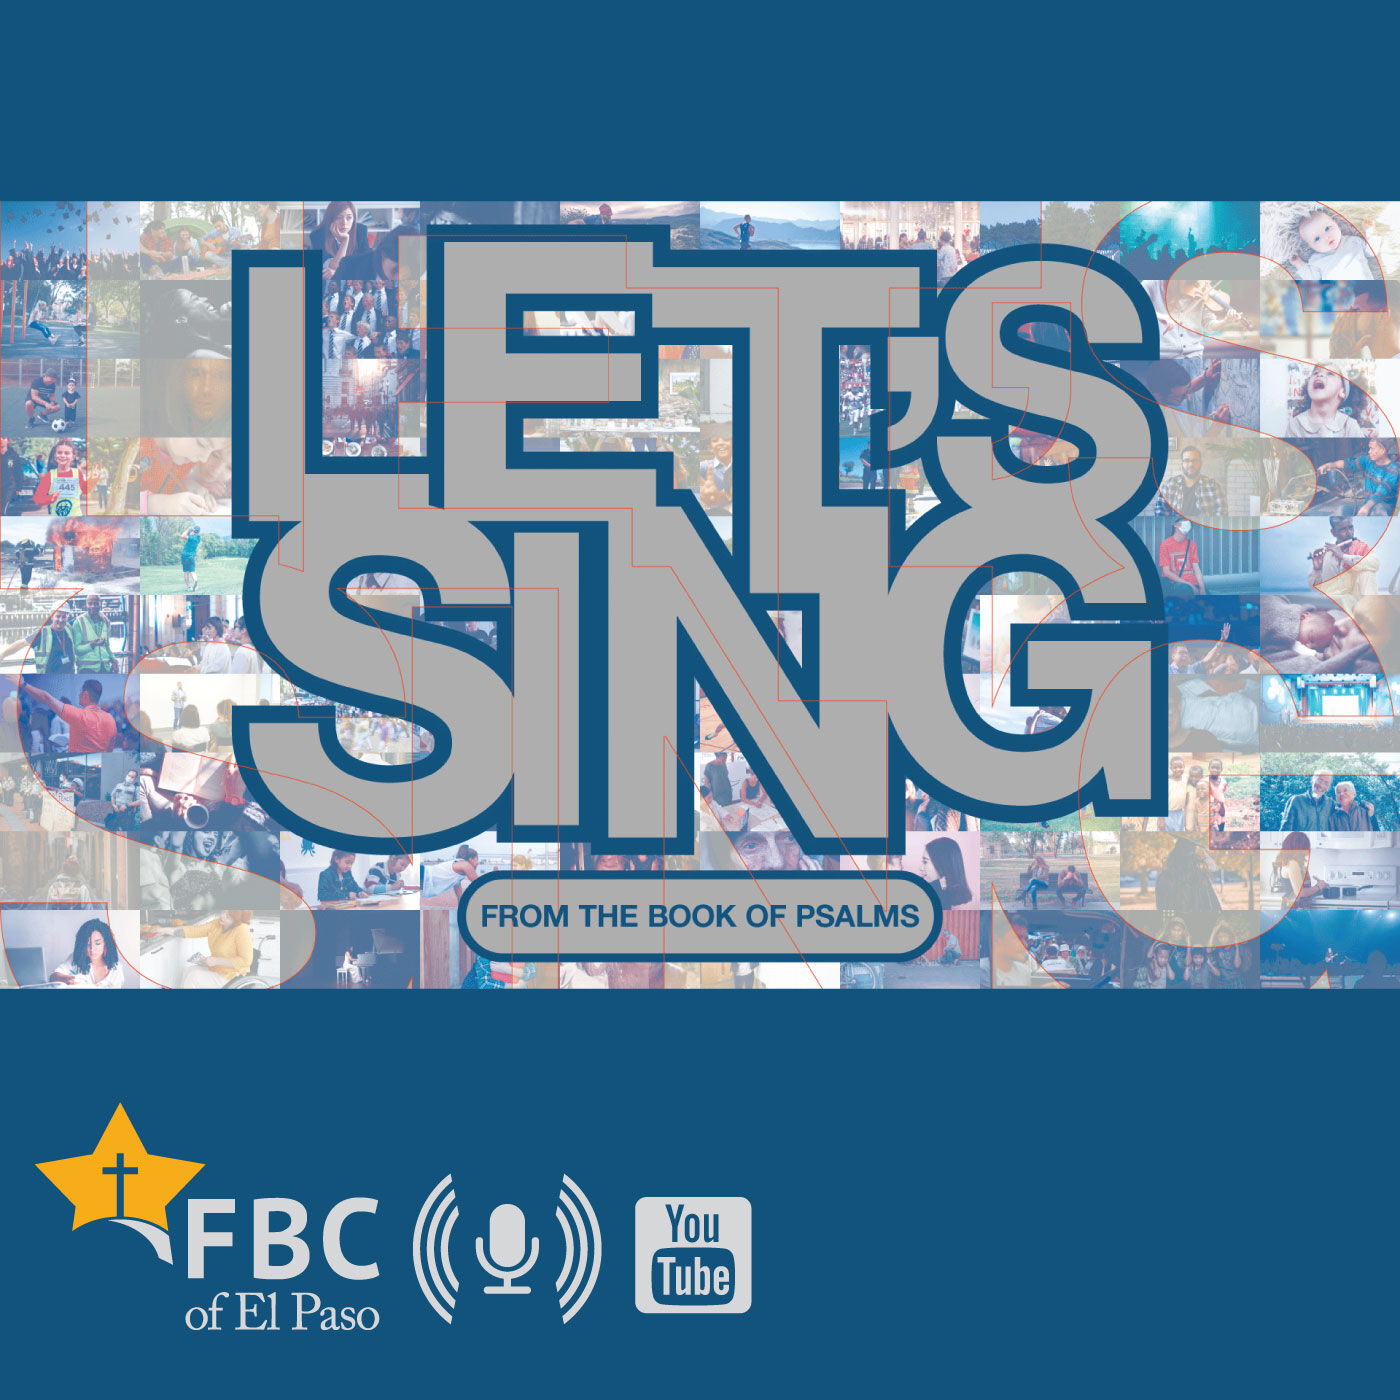 Let's Sing (July 19, 2020)